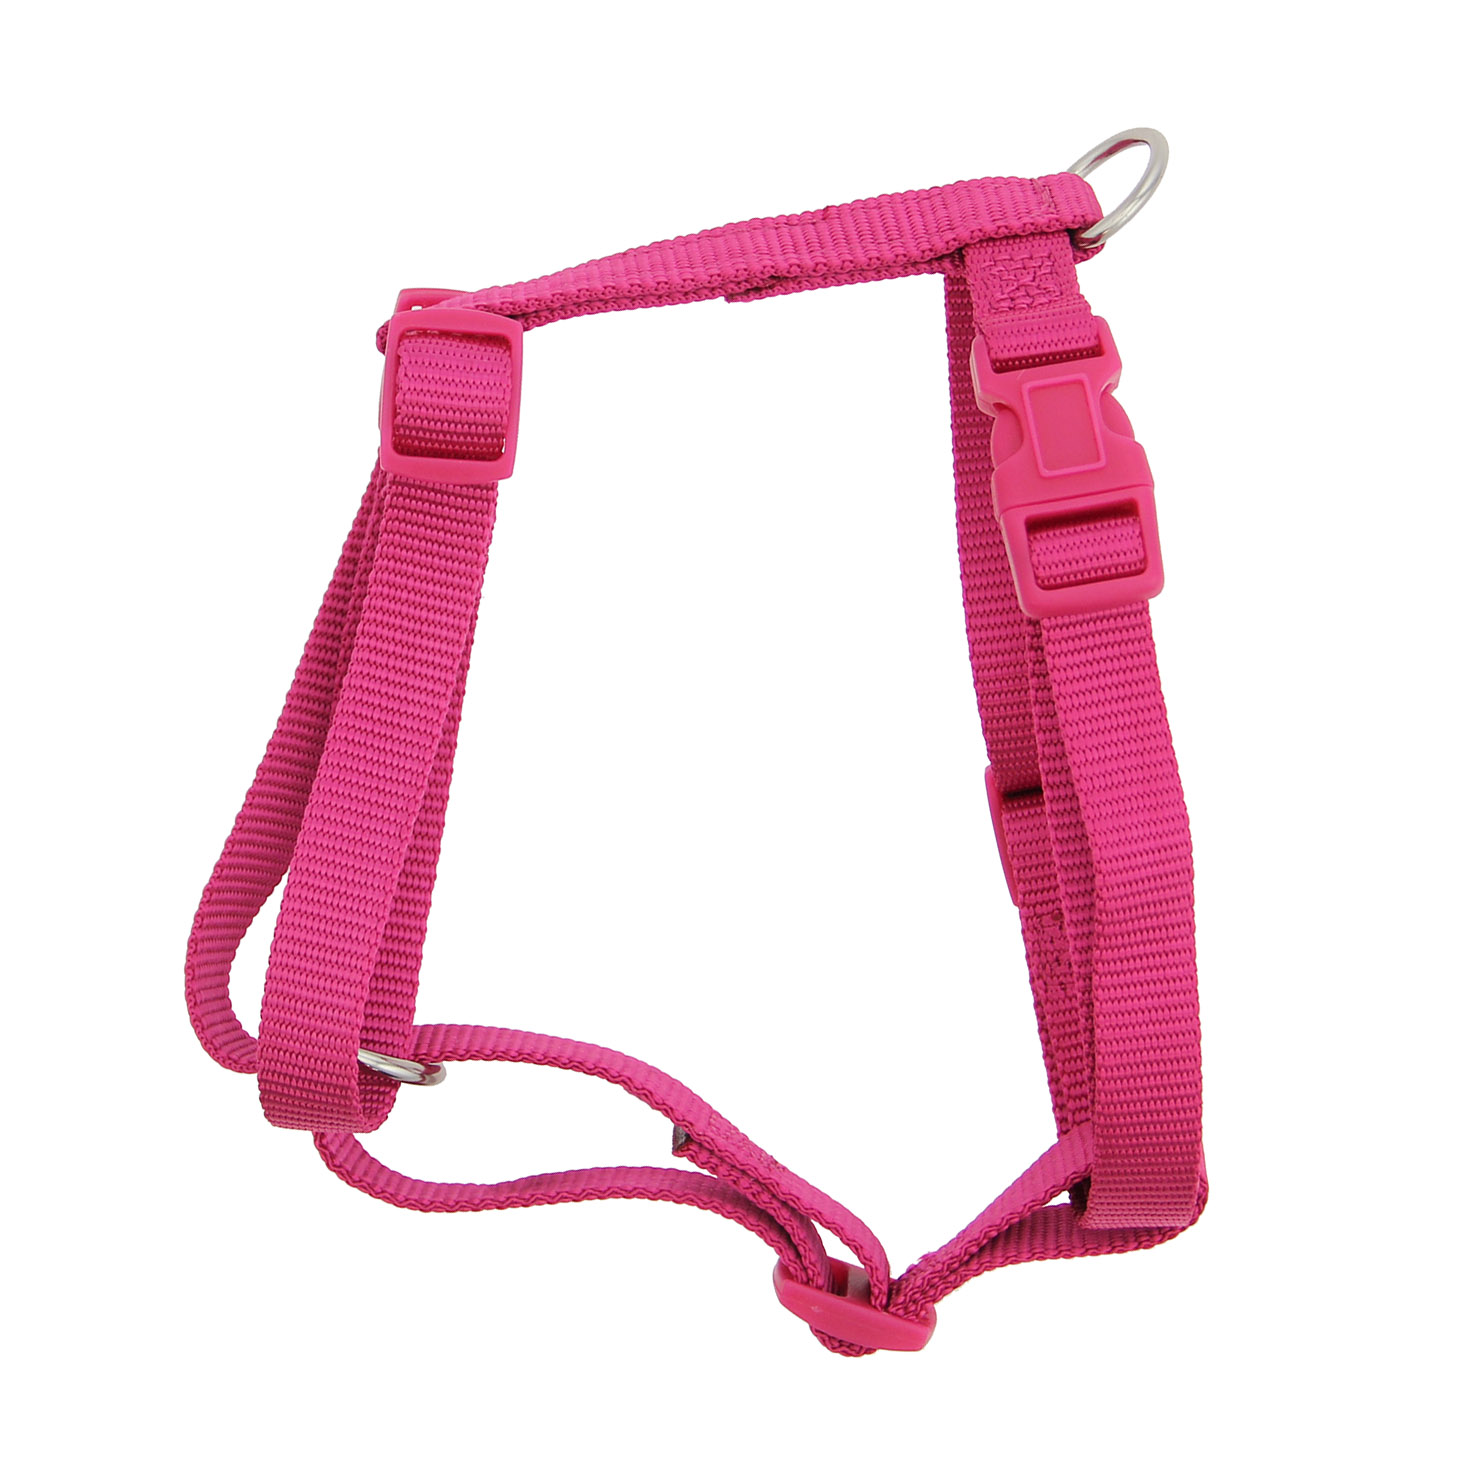 Nylon Harness by Zack & Zoey - Raspberry Sorbet